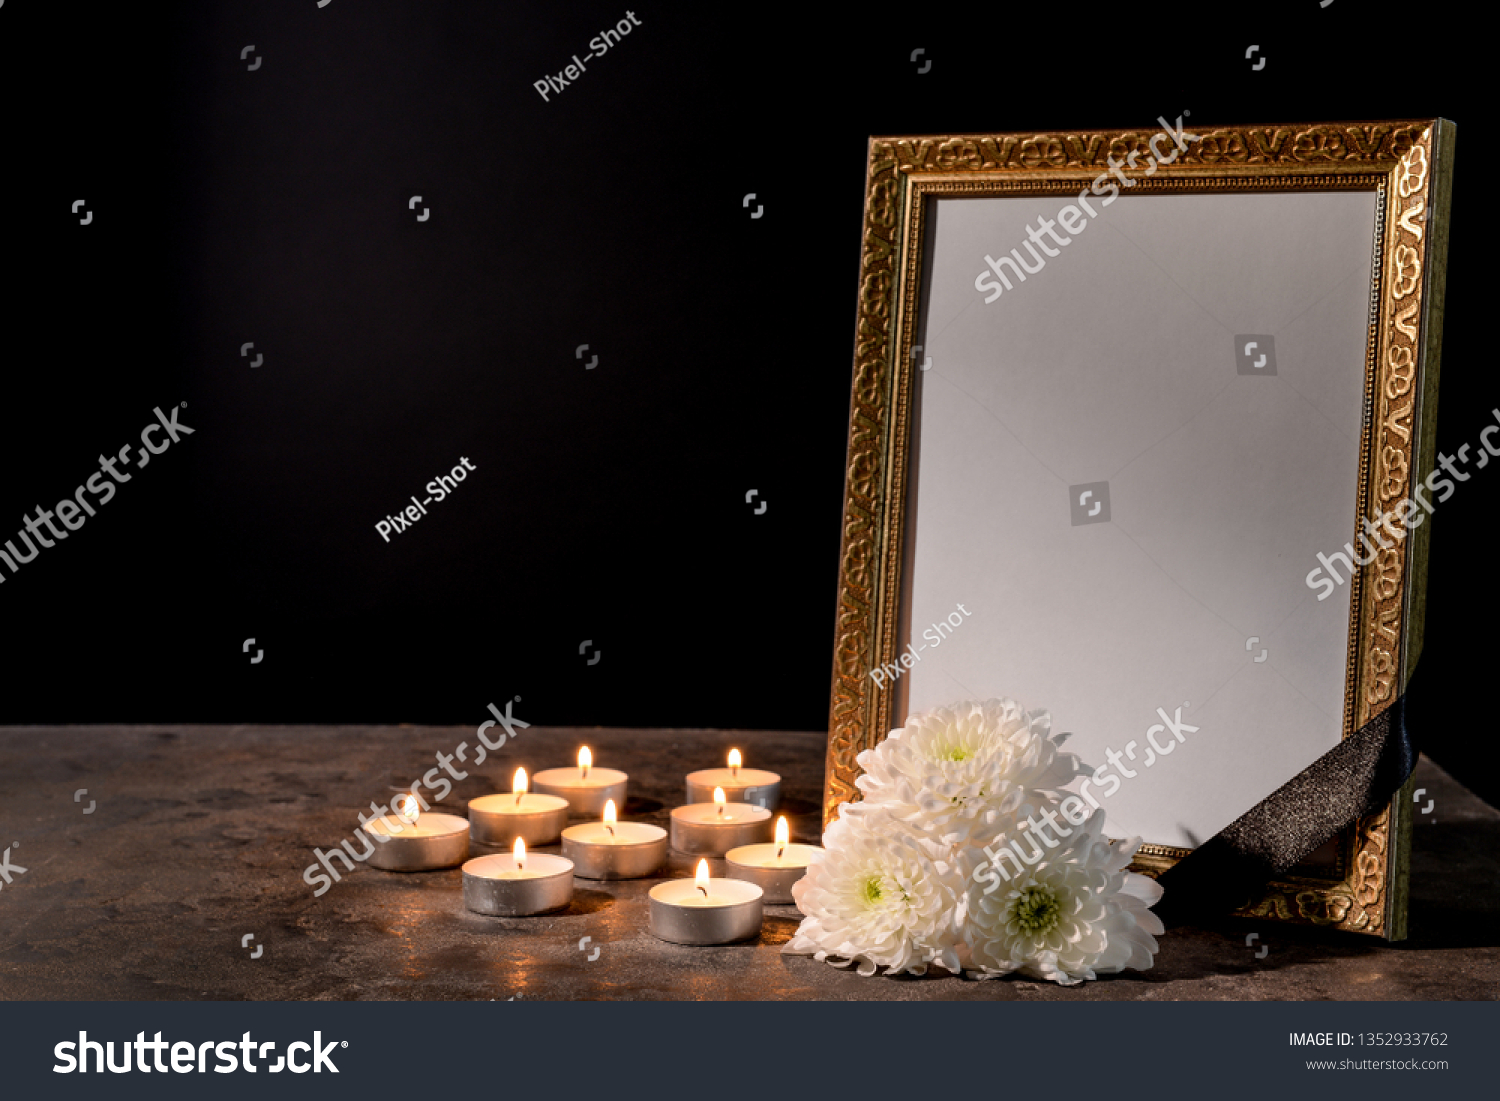 Blank funeral frame, candles and flowers on table against black background #1352933762